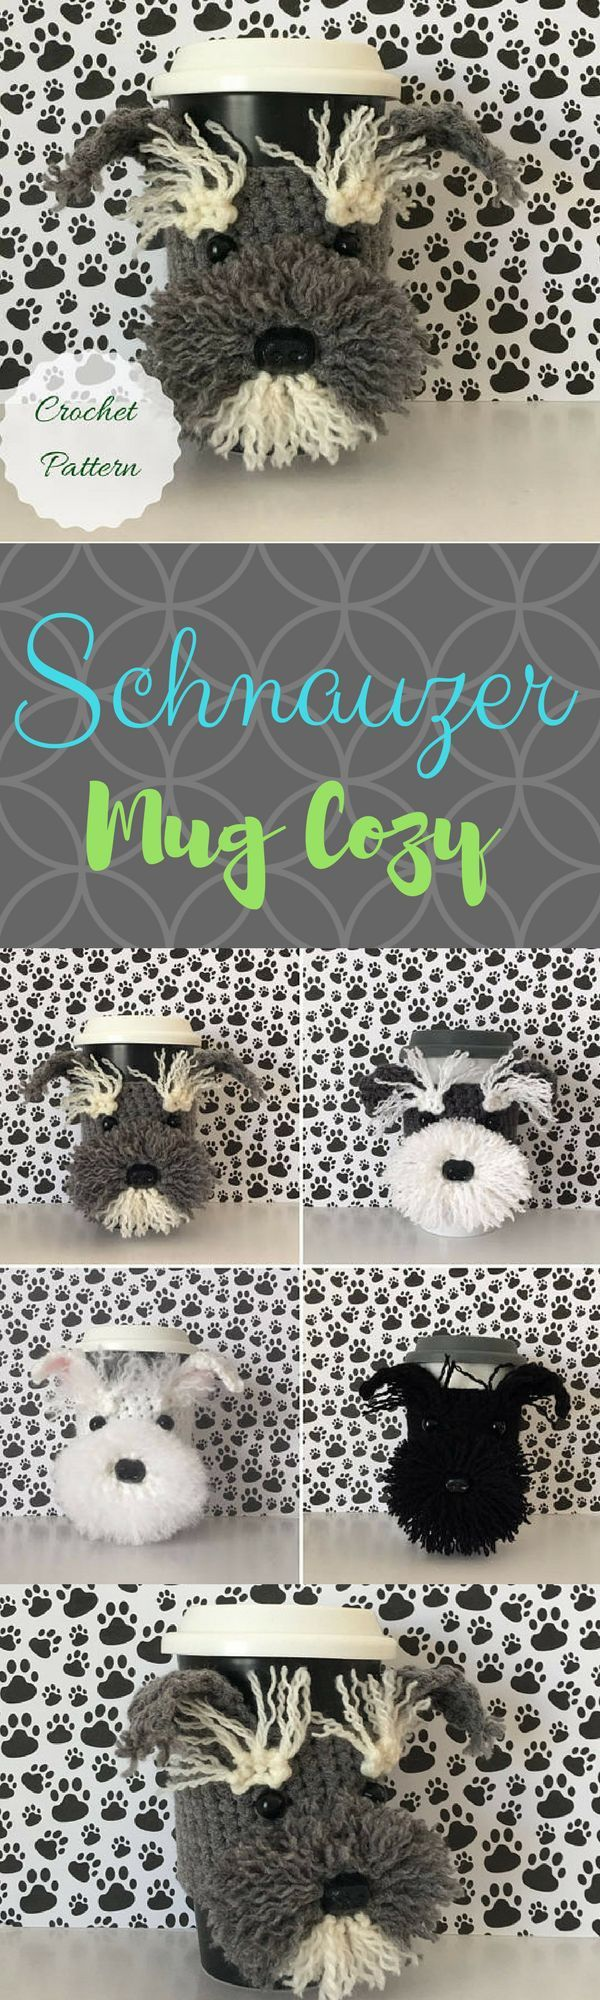 Schnauzer Crochet Pattern, Mug Cozy Pattern, Amigurumi Dog, Crochet Pattern Dog, Crochet Dog Pattern, Dog Crochet Pattern, Tea Cozy Pattern #crochet #schnauzer #mugcozy #coffee #affiliate